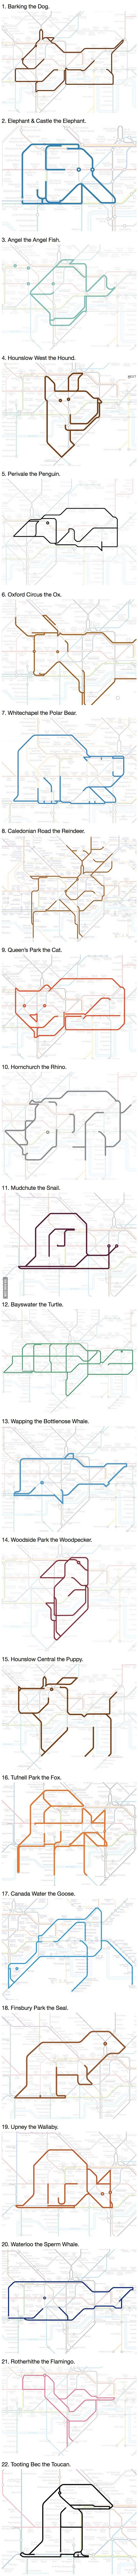 22 Animals Who've Been Hiding Out In The London Underground Map